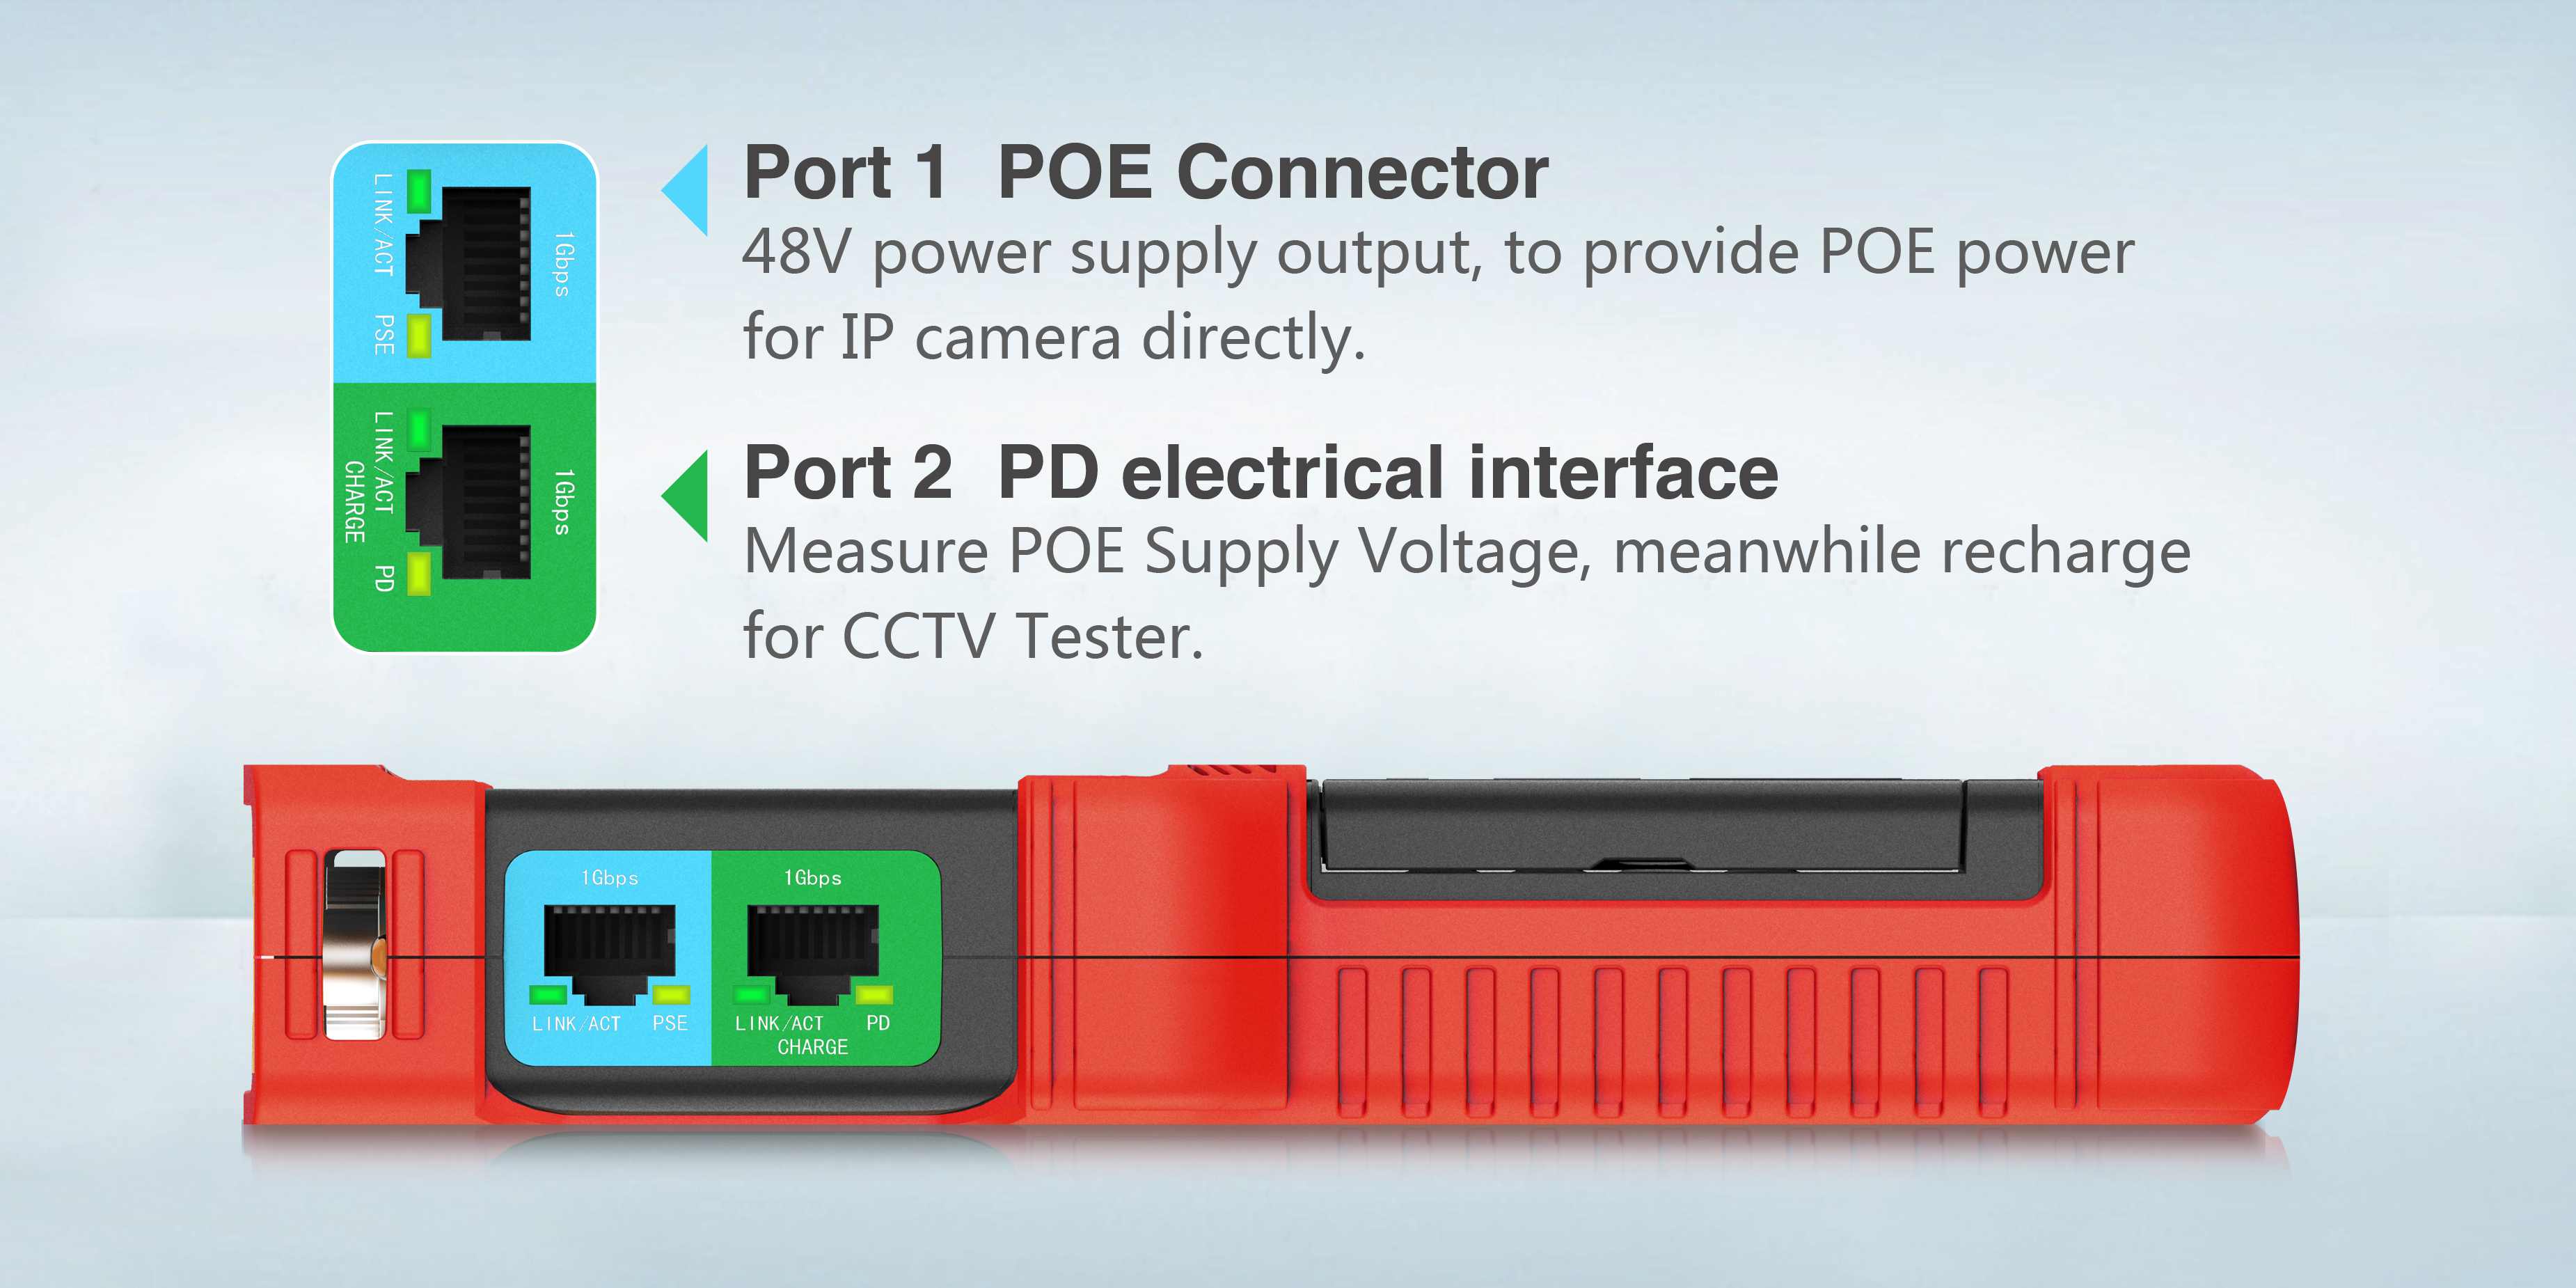 POE connector & PD electrical interface